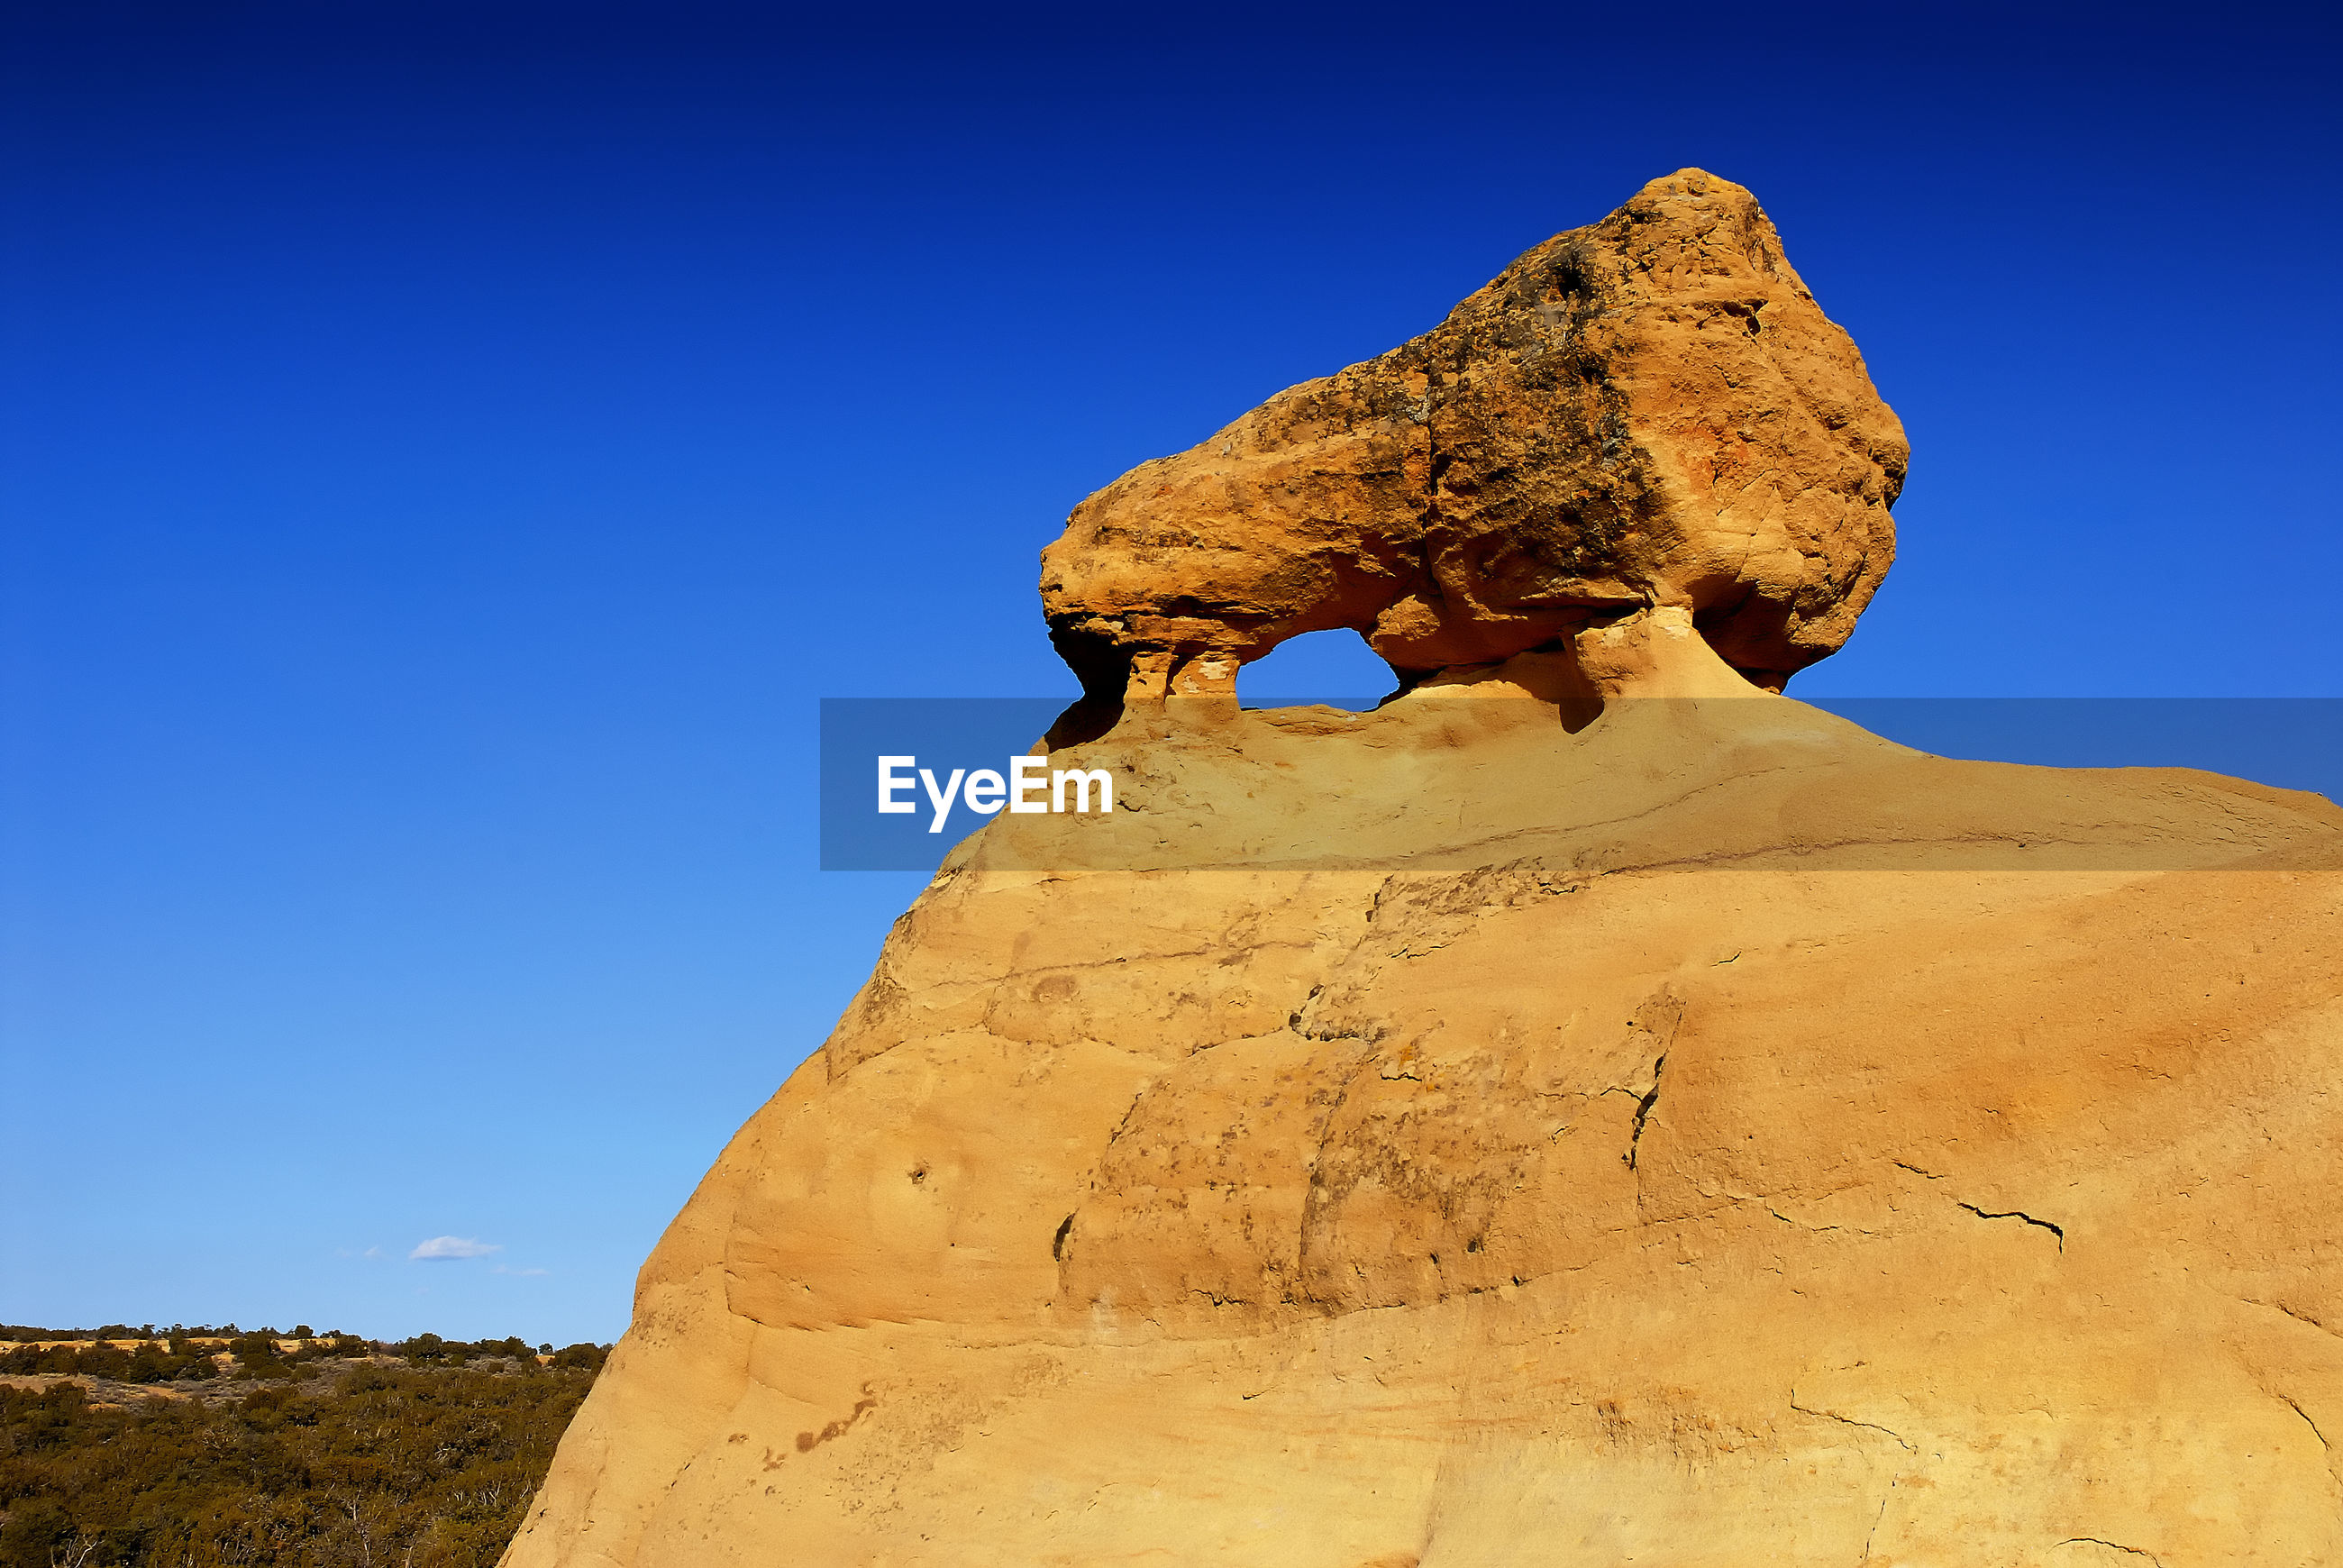 View of huge rocky structure against clear sky